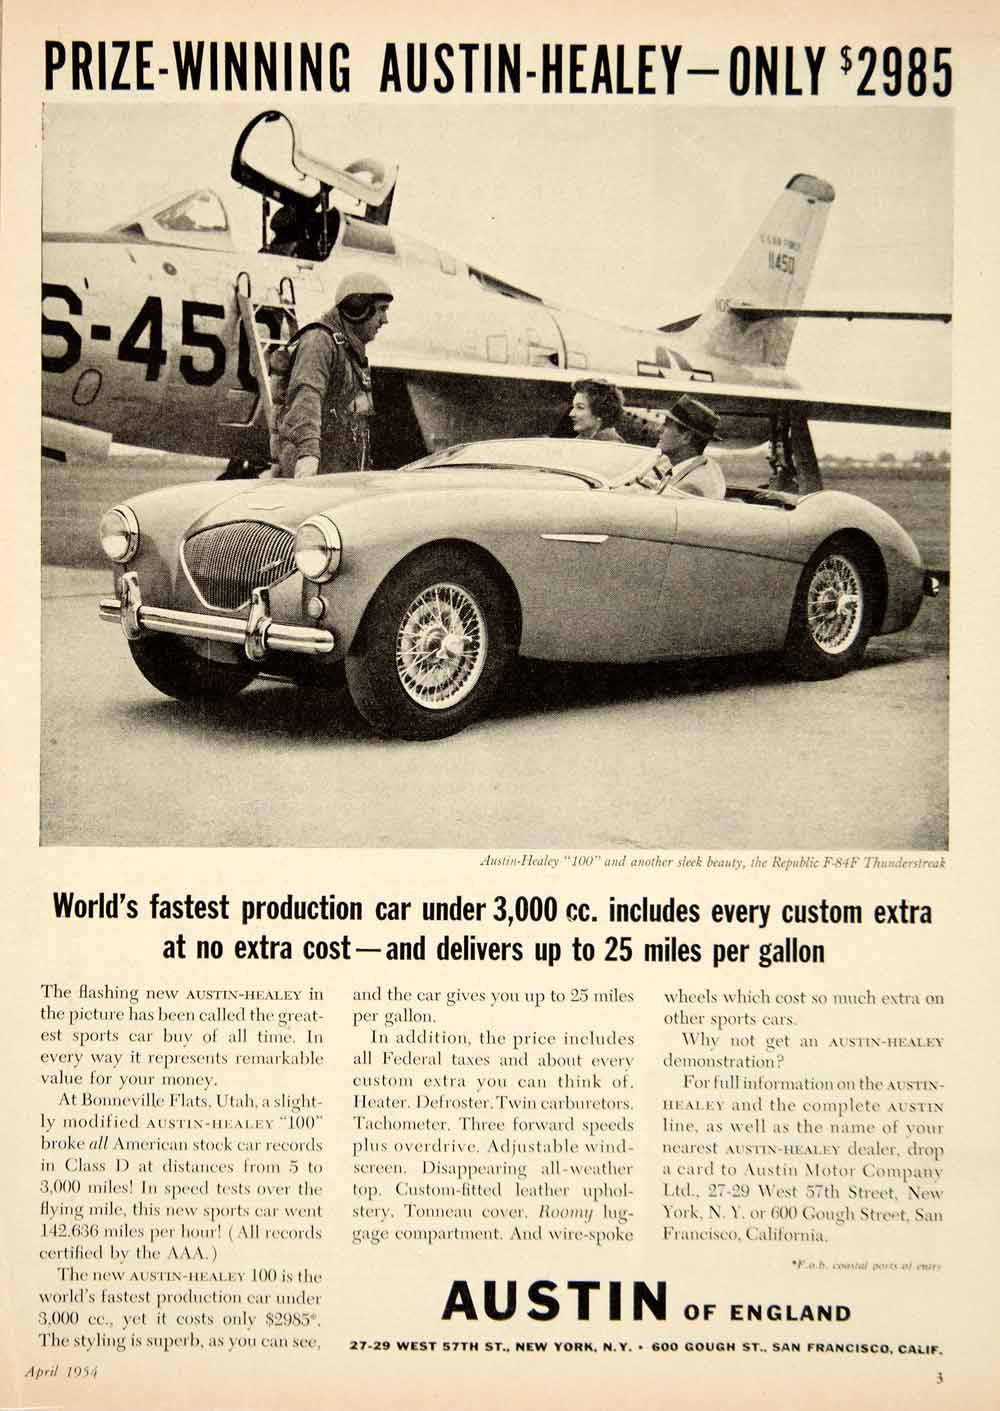 1954 Ad Austin-Healey 100 Sports Car Republic F-84F Thunderbird Airplane YMT1 - Period Paper